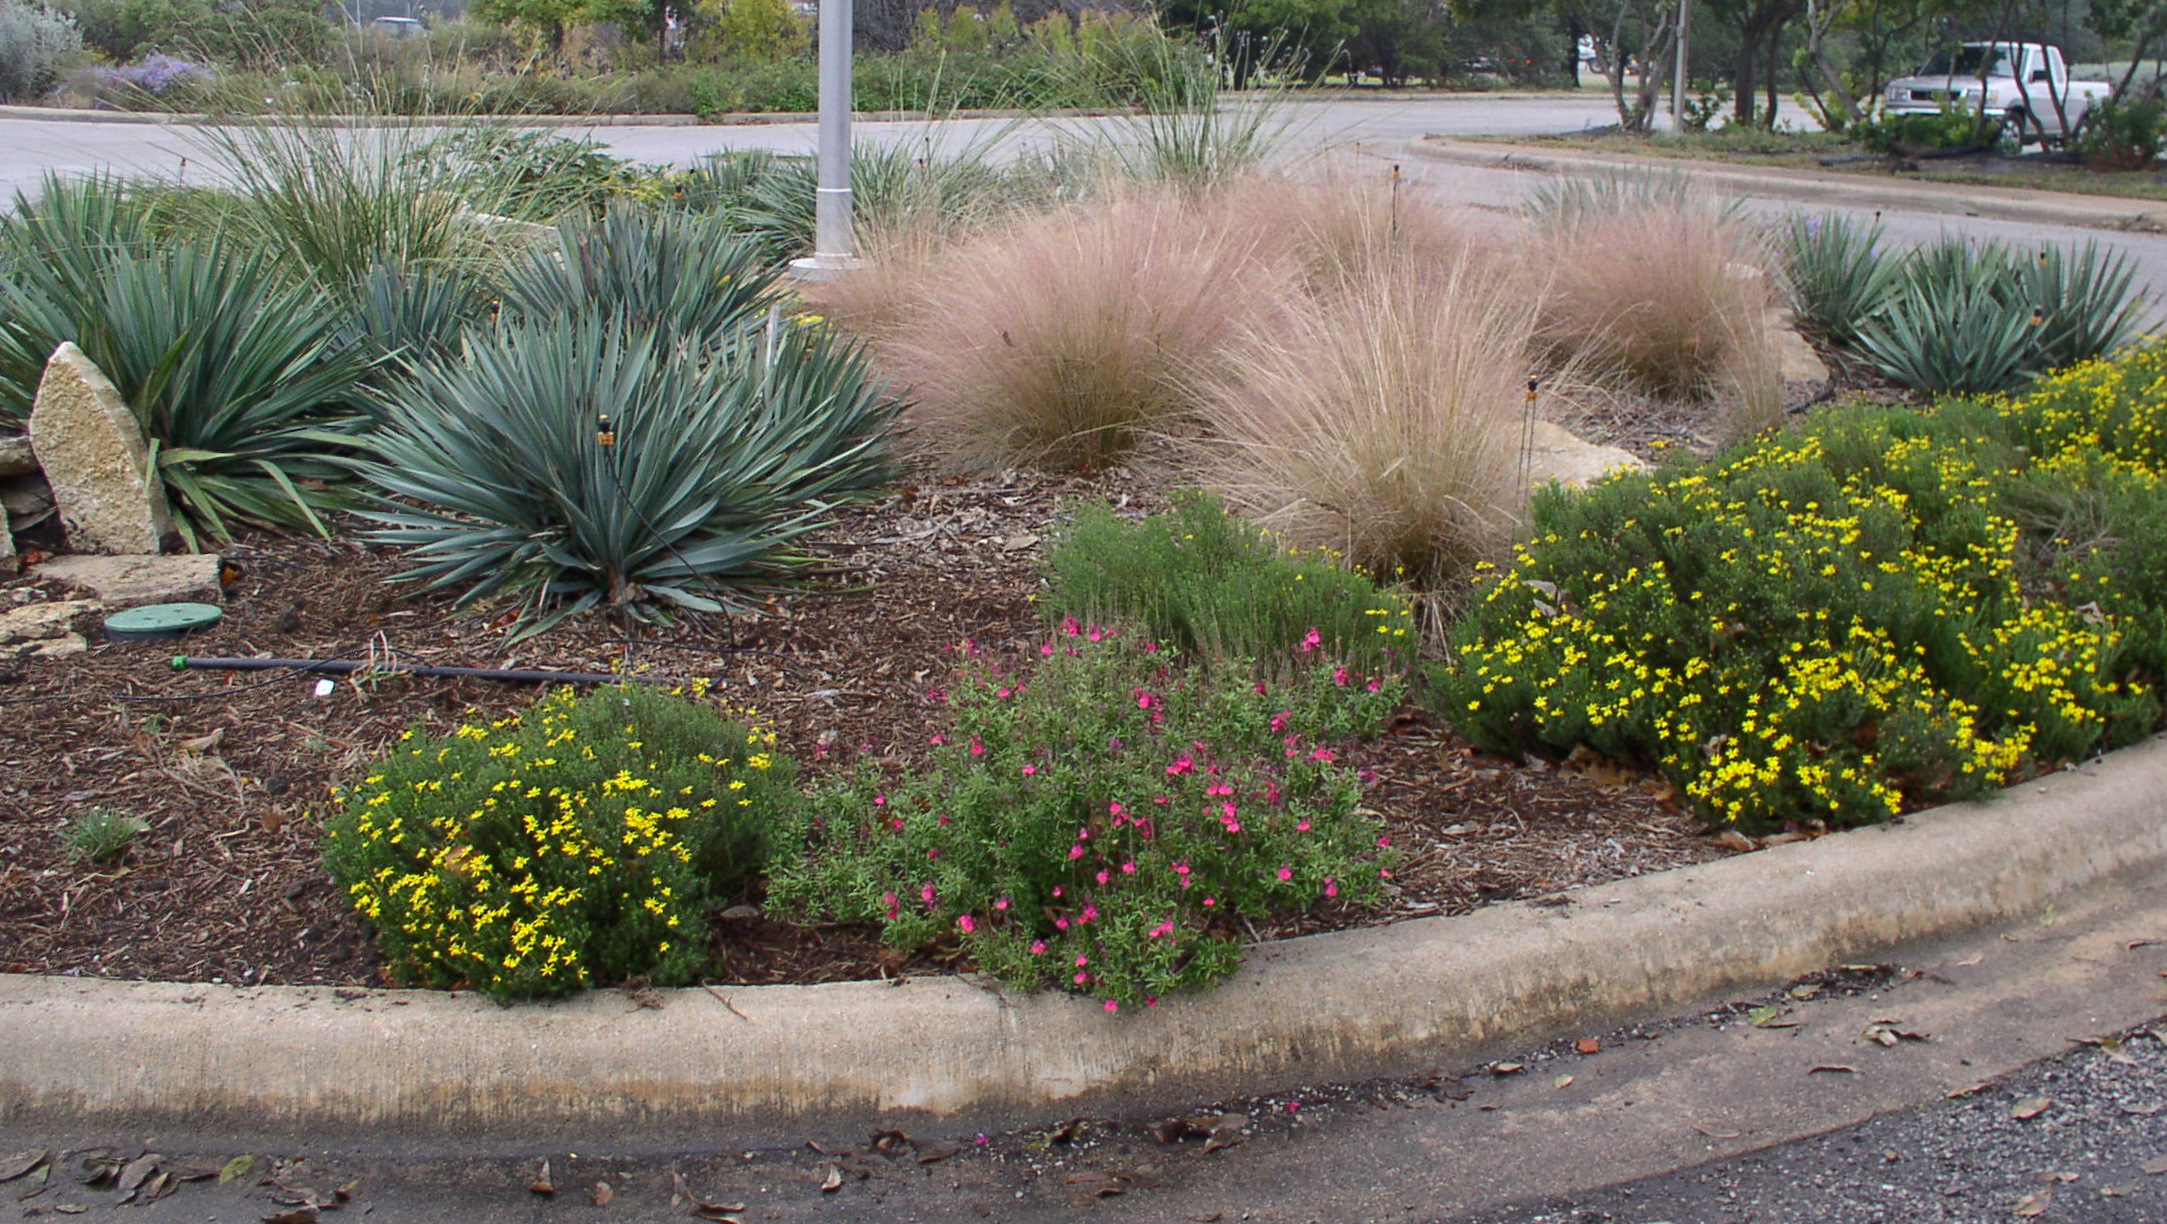 Landscaping With Evergreens And Grasses : Grasses in an urban landscape photo carol feldman